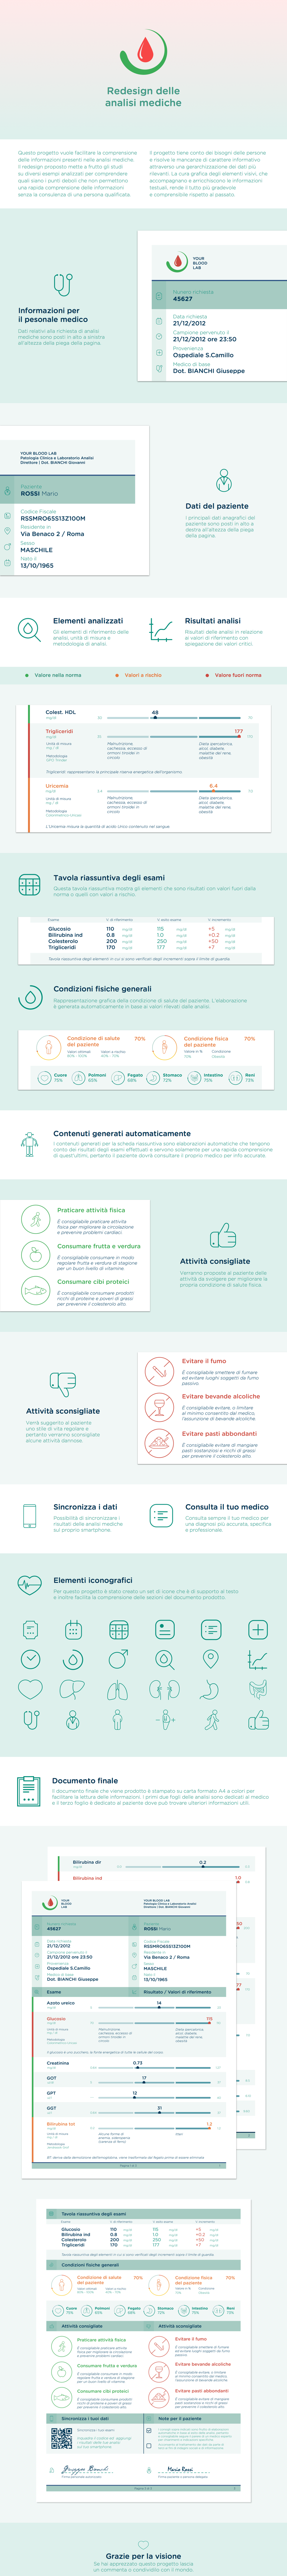 medical analytics medical tests medical analytics medical exam redesign Health healthcare infographic